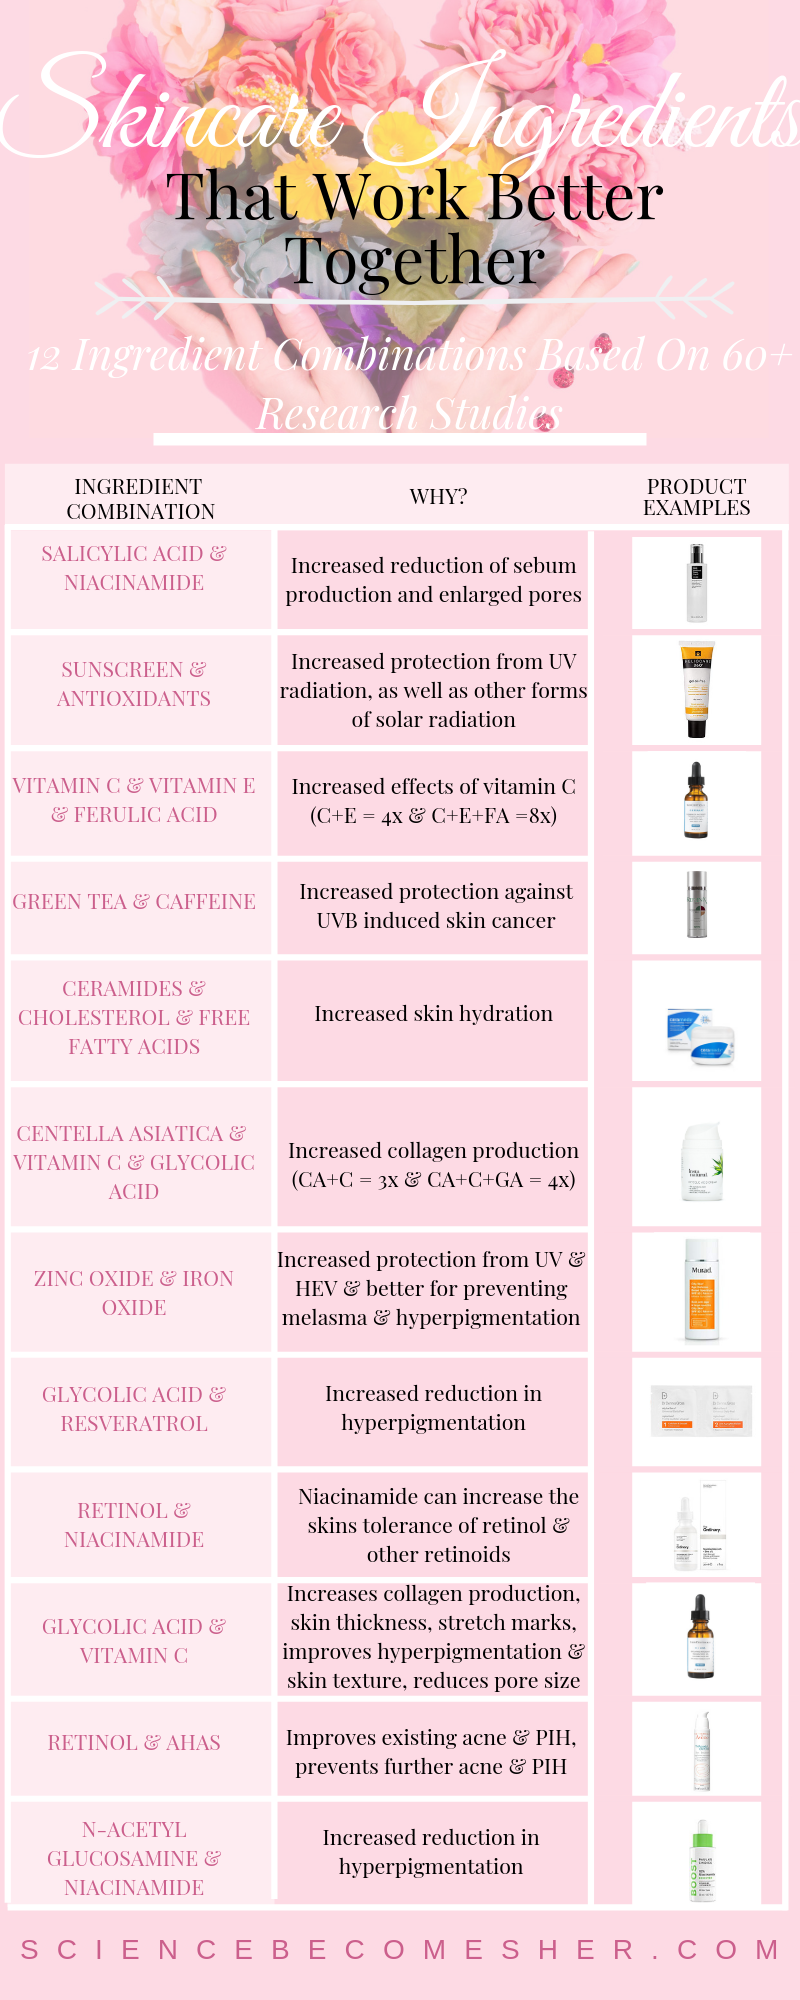 12 Skincare Ingredient Combinations That Work Better Together Where To Find Them Skincare Ingredients Skin Care Solutions Skin Care